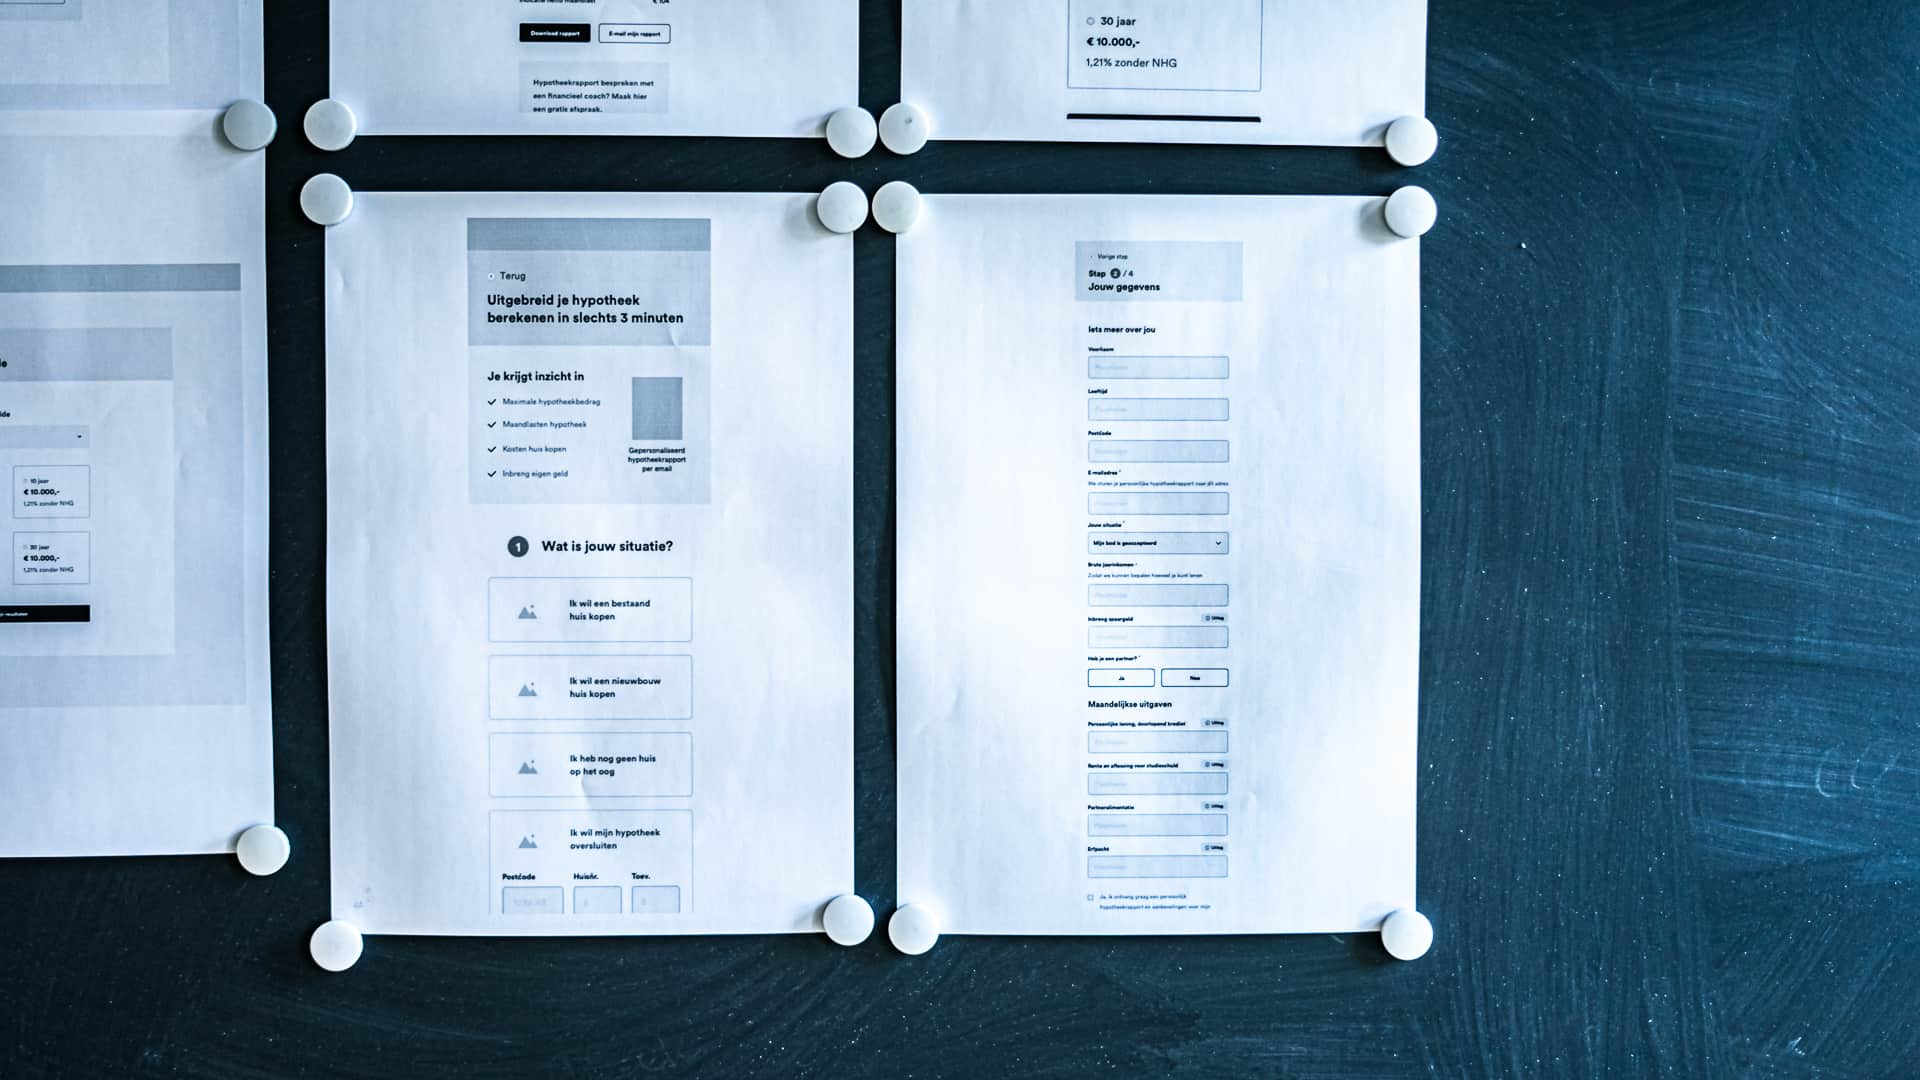 Case - Finzie - Wireframing